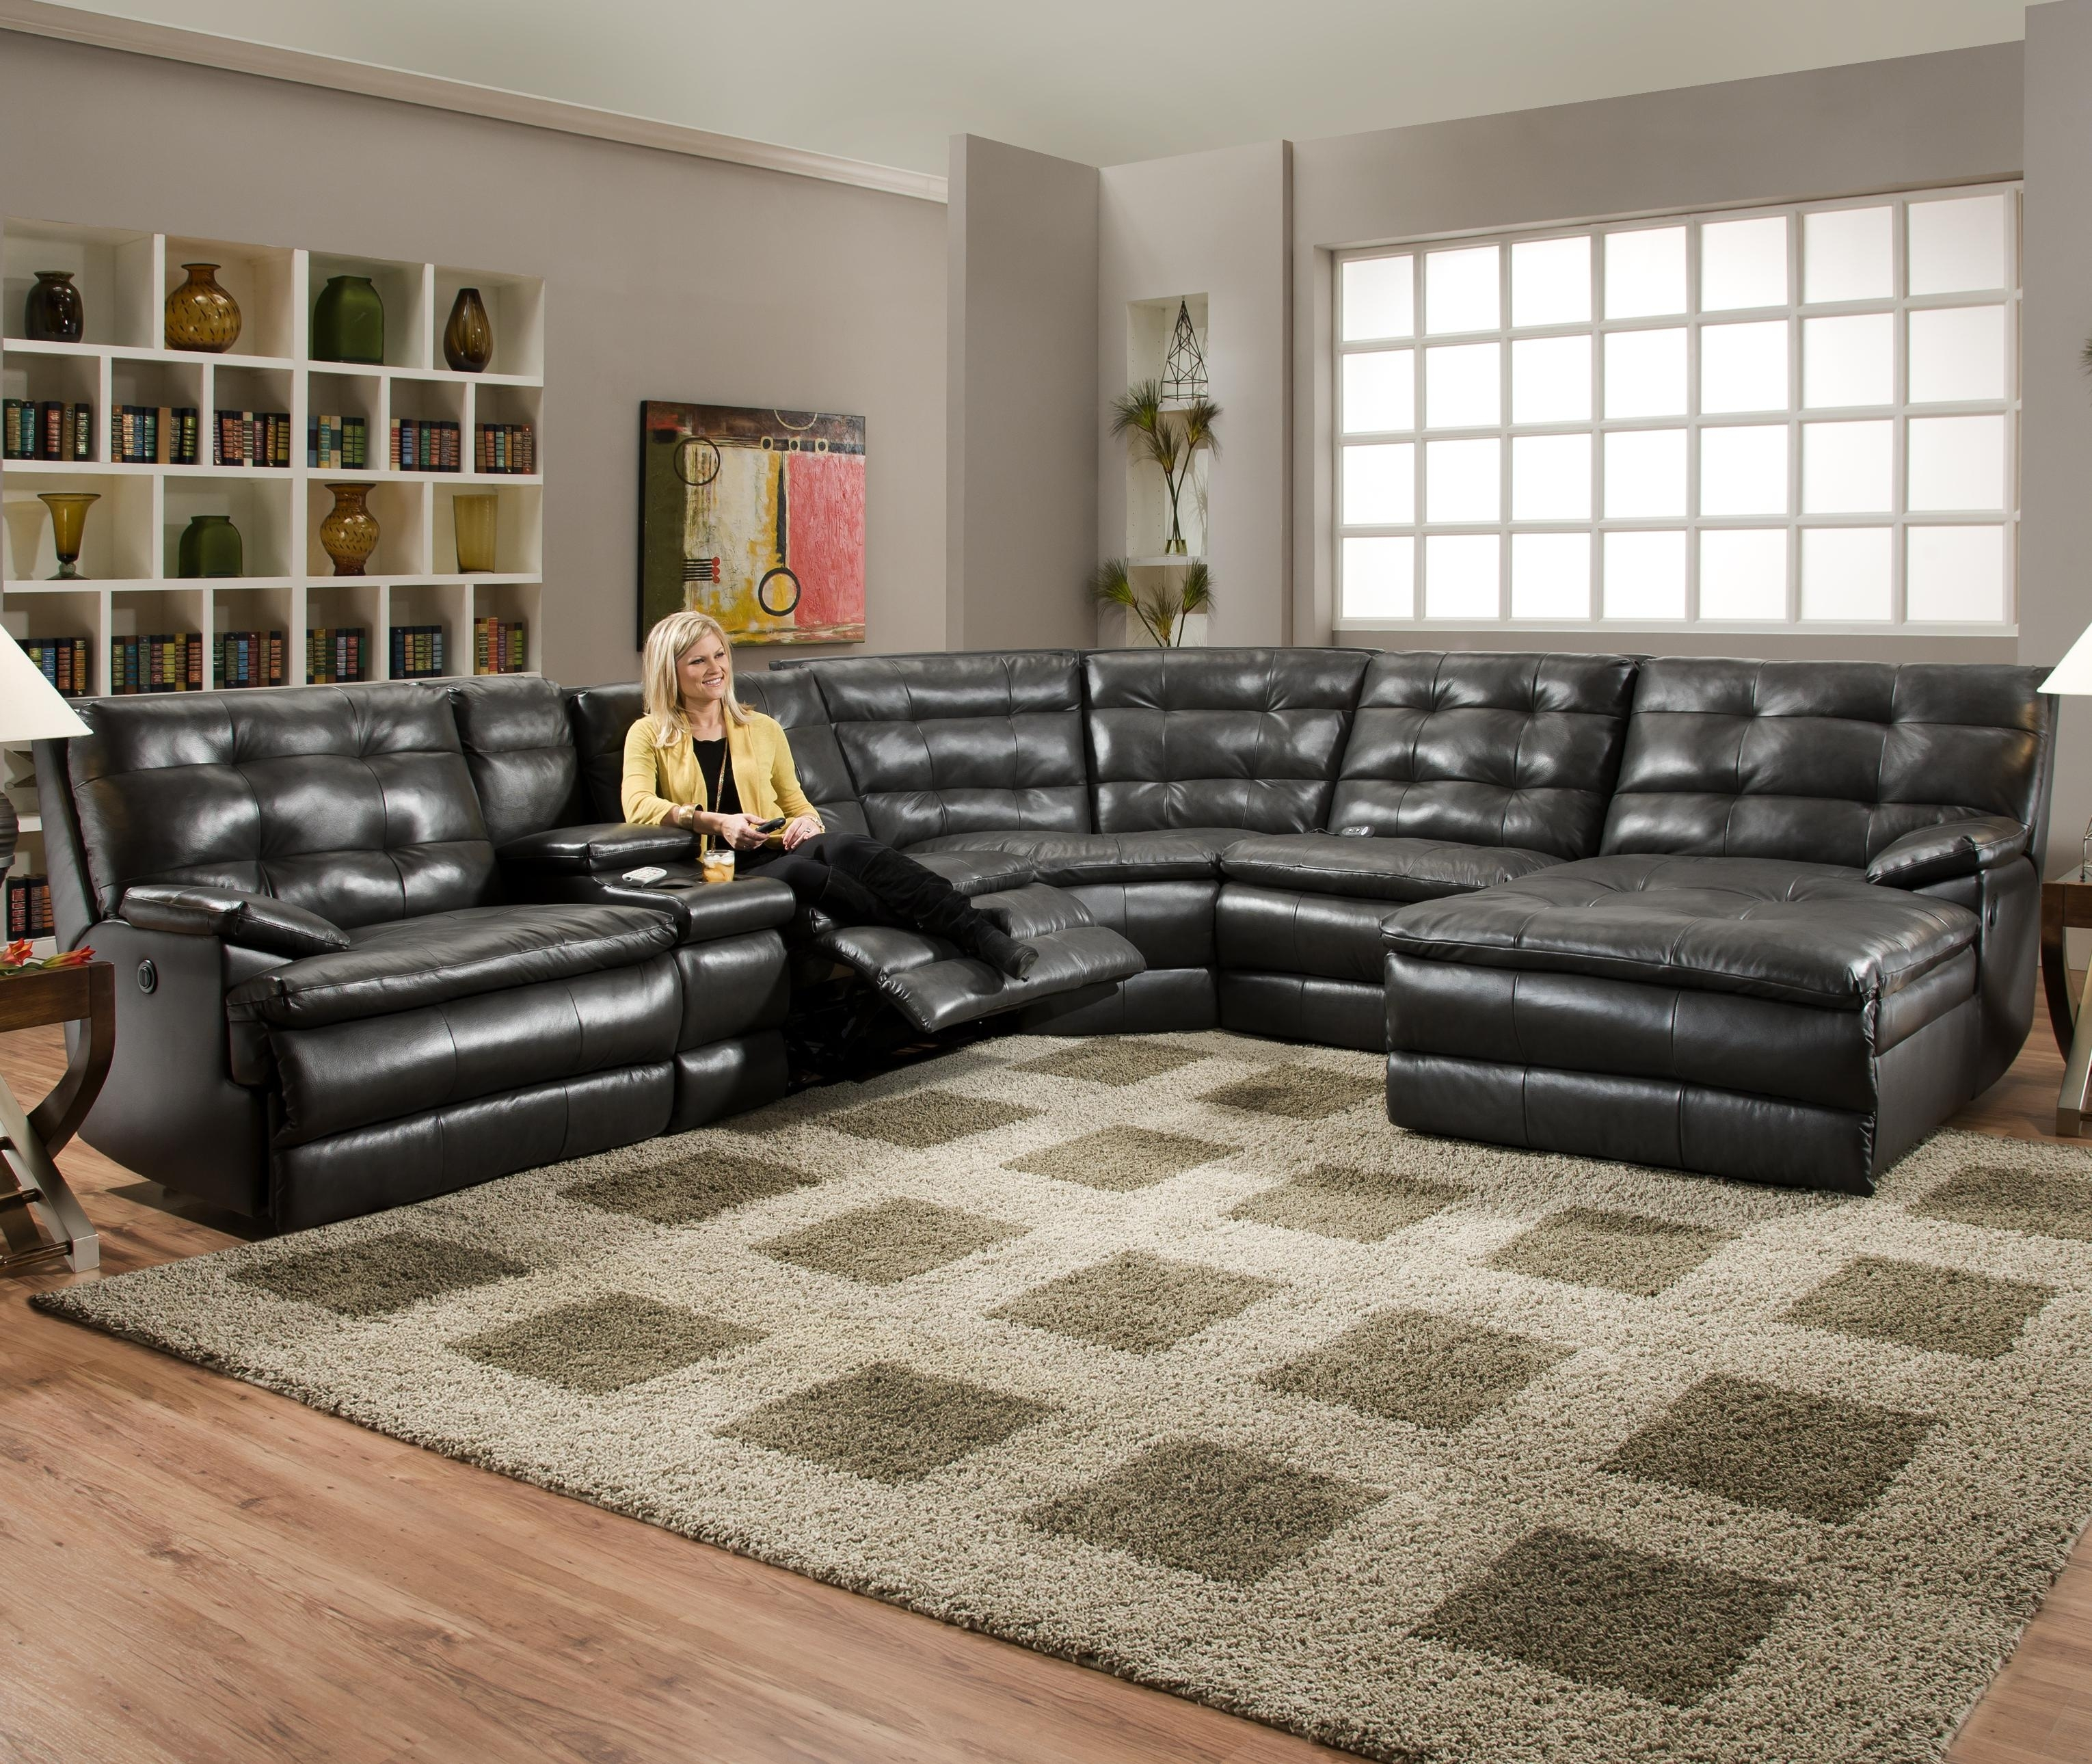 Luxurious Tufted Leather Sectional Sofa In Classy Black Color With For Sectional Sofas In Stock (View 4 of 10)